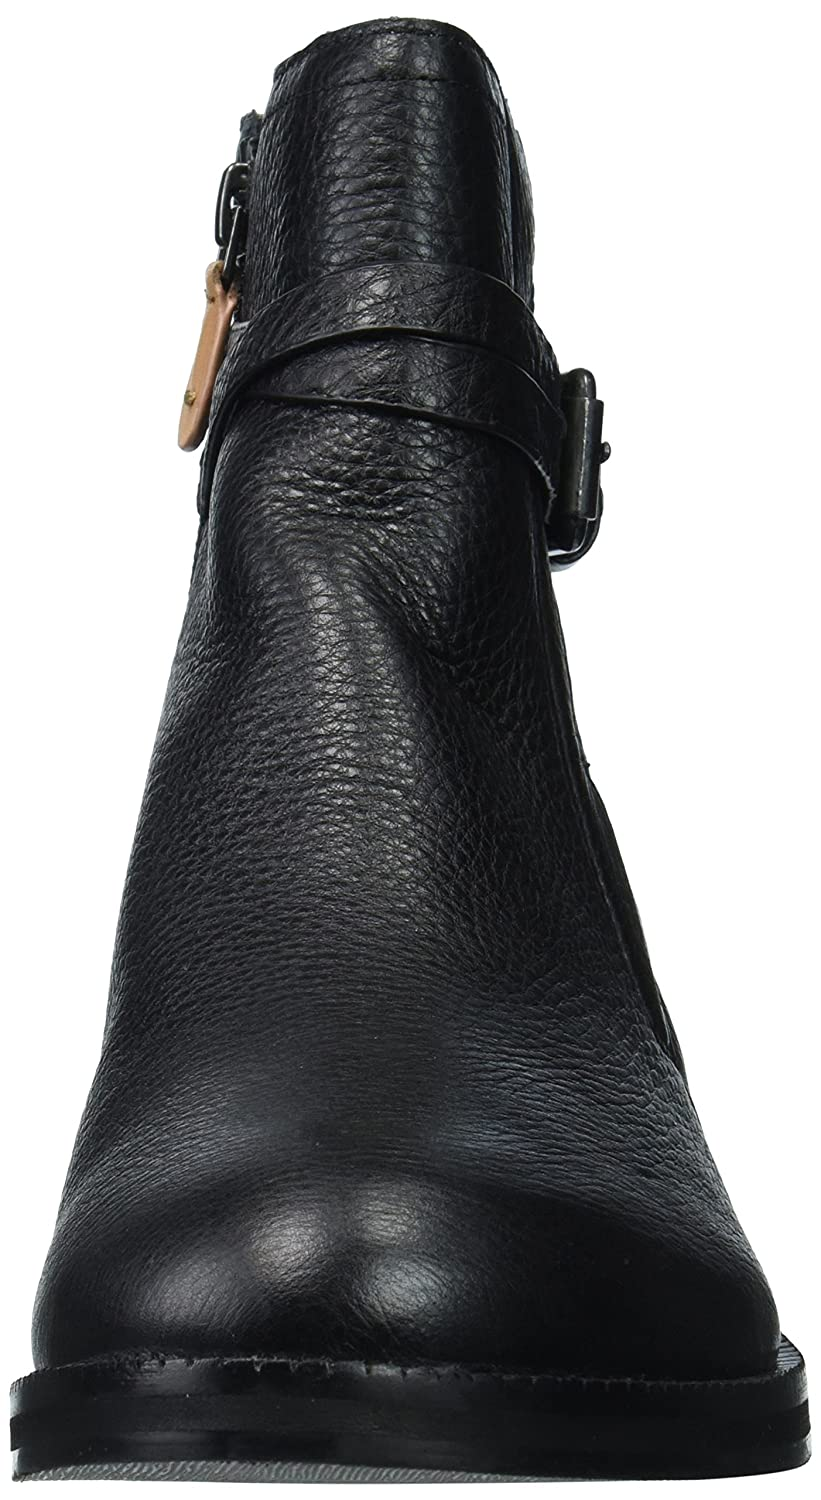 Gentle Souls Women's Percy Bootie with Buckle Detail Ankle Boot B06XXLSH7Y 8 B(M) US|Black